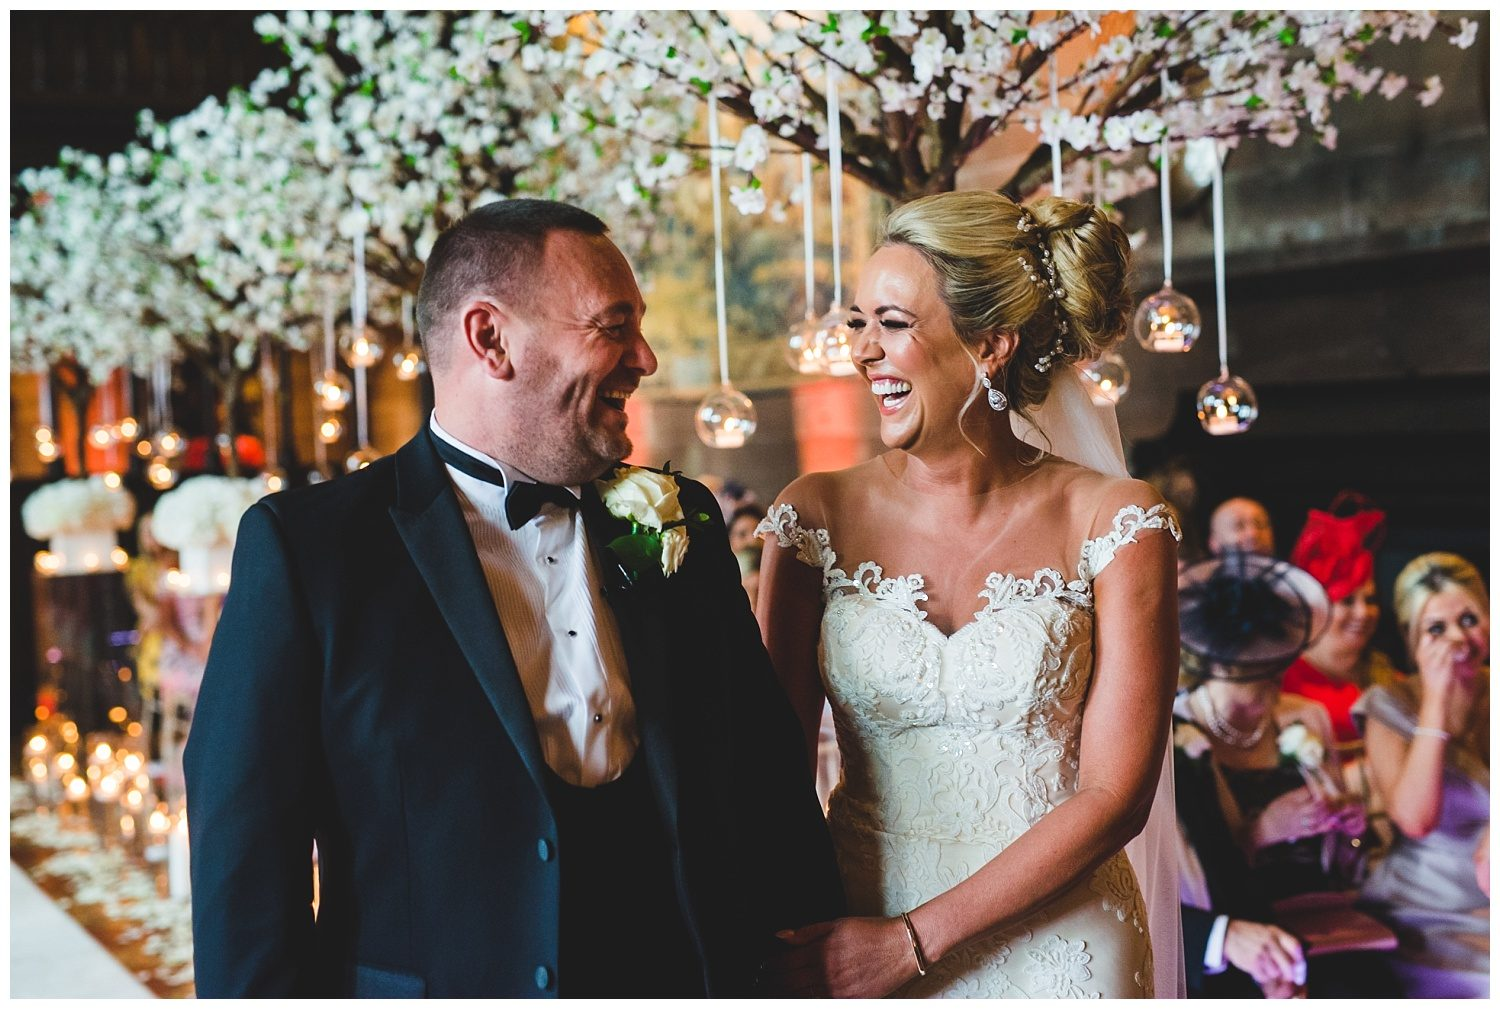 Laughing bride and groom during their Peckforton Castle wedding ceremony